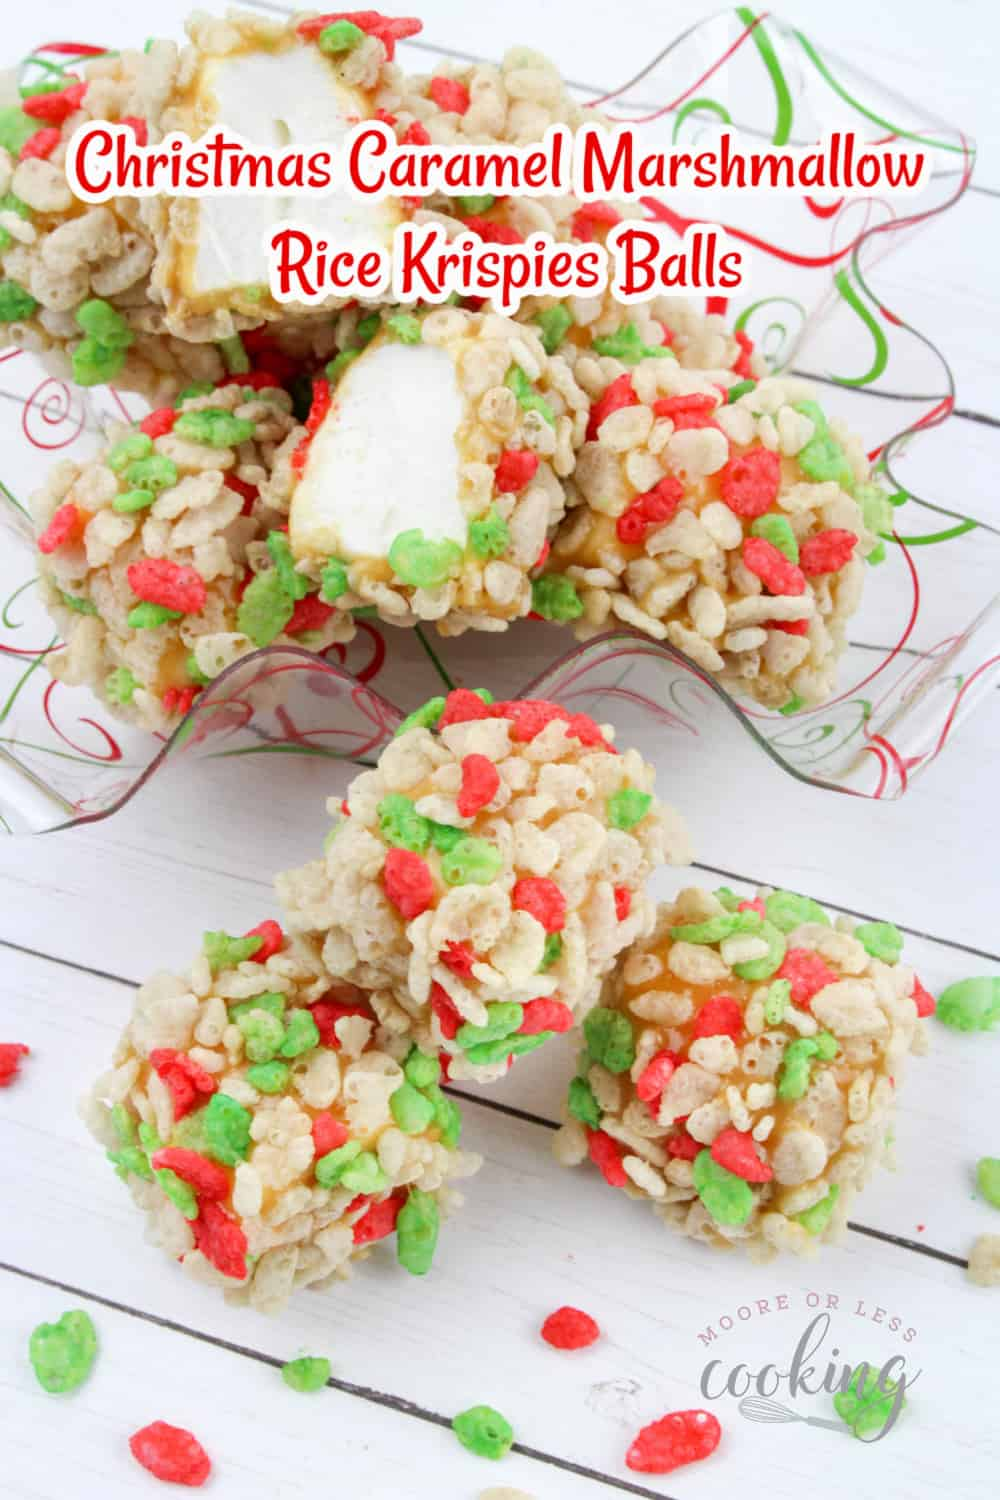 These no-bake Christmas Caramel Marshmallow Rice Krispies Balls may be the easiest dessert you make this season. They're the perfect melt in your mouth sweet treat for the holidays! via @Mooreorlesscook